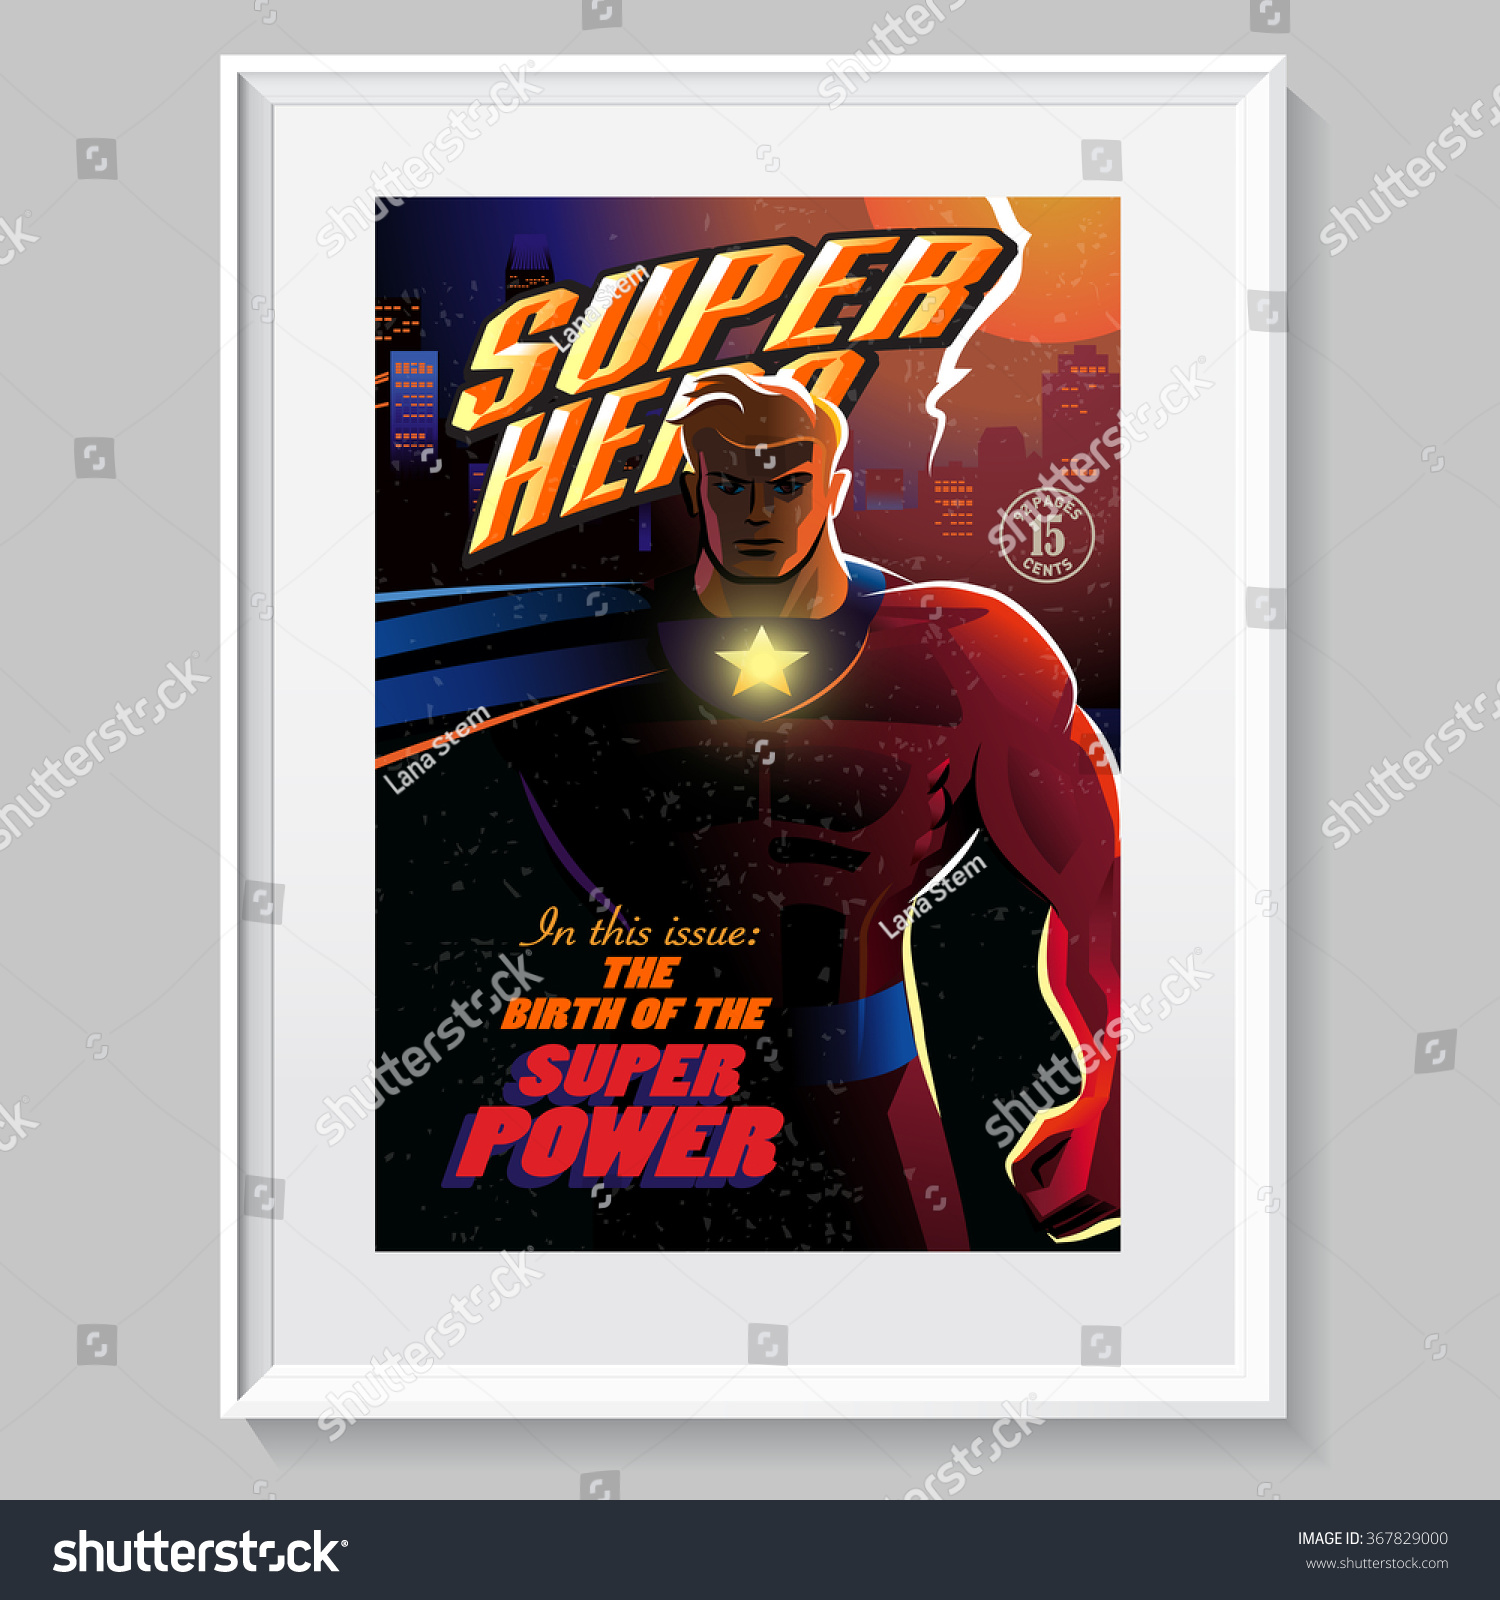 Comic Book Cover Layout : Superhero action fake comic book cover stock vector